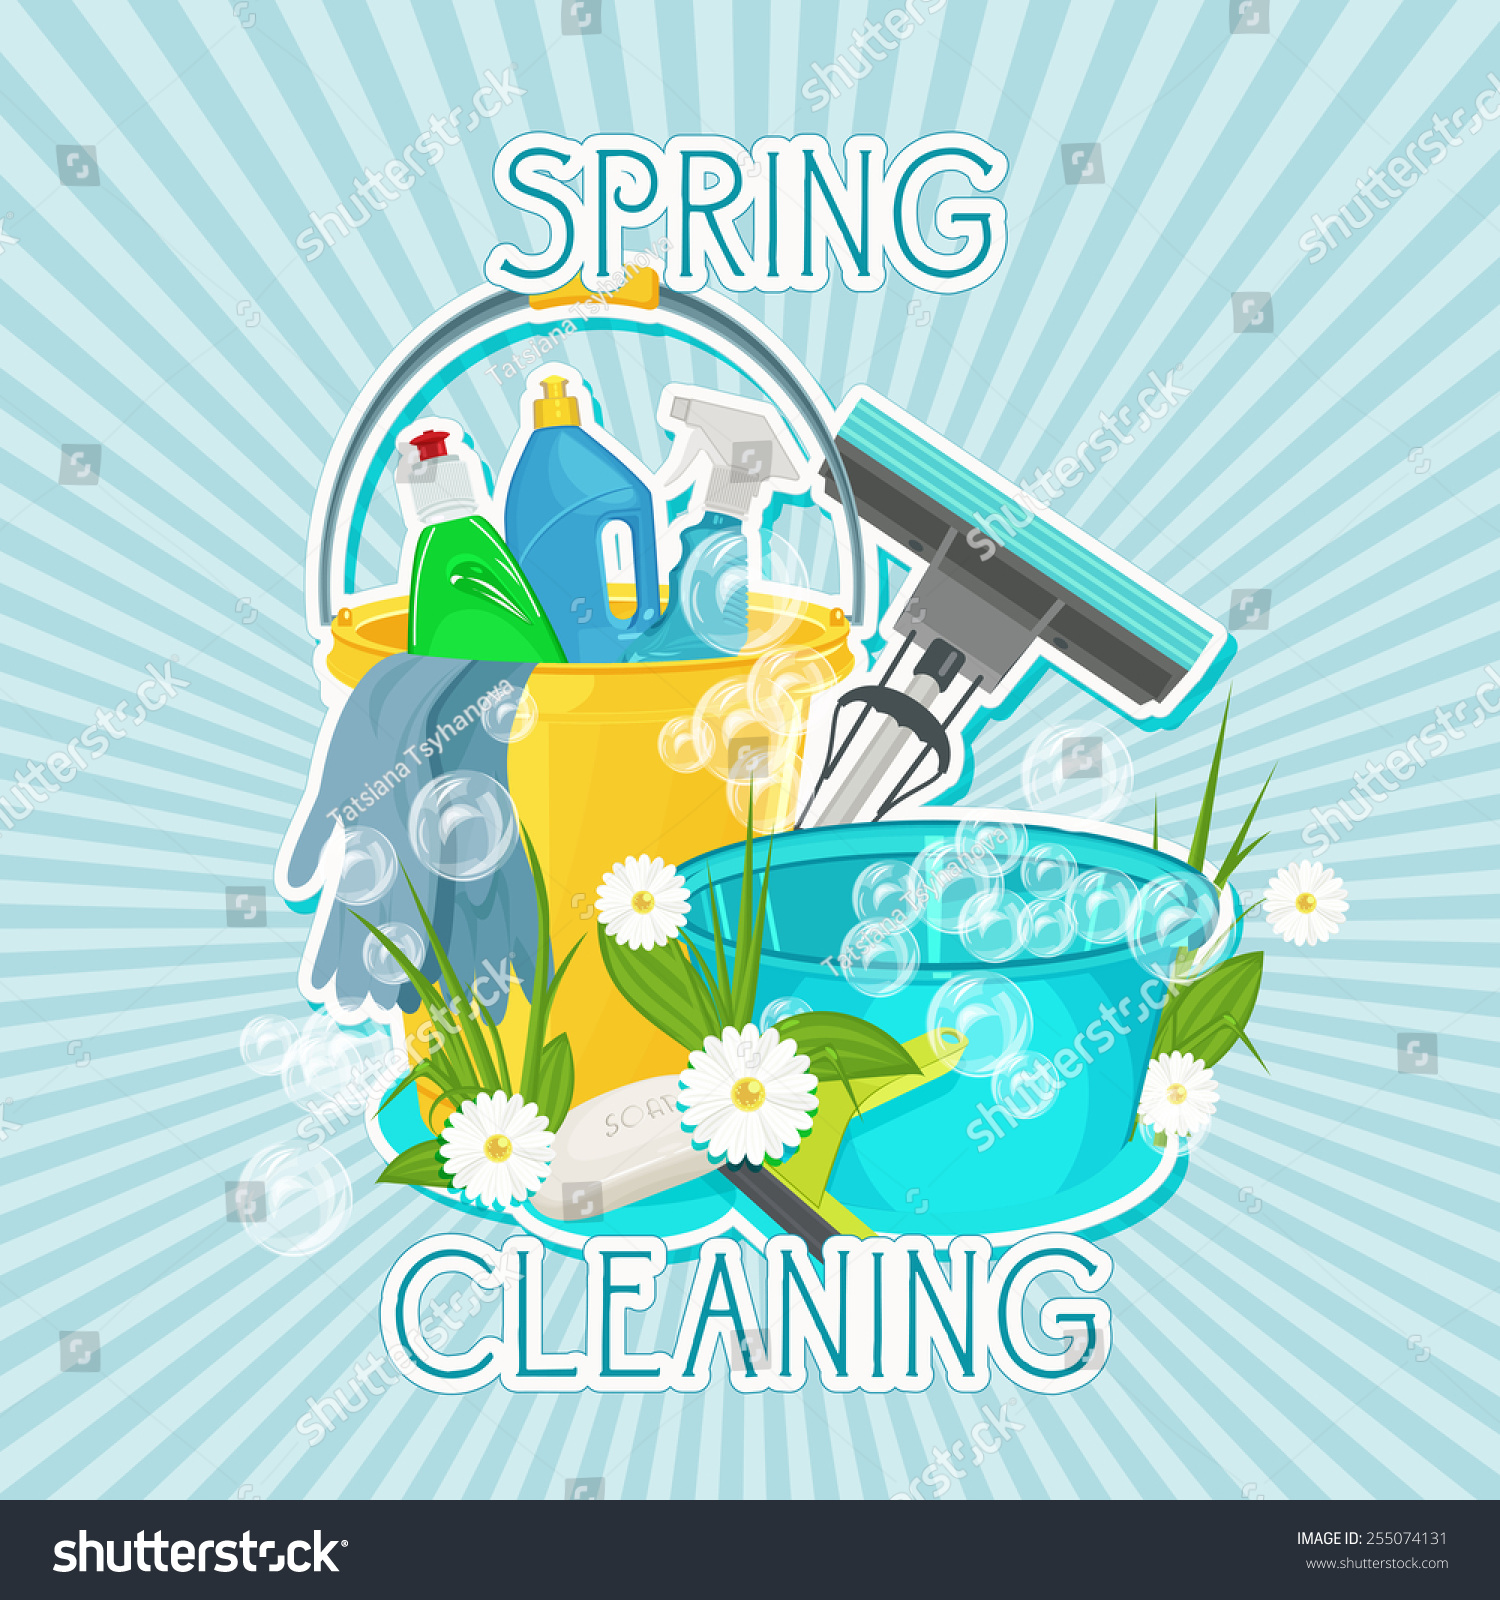 Poster design kit - Poster Design For Cleaning Service And Cleaning Supplies Spring Cleaning Kit Icons